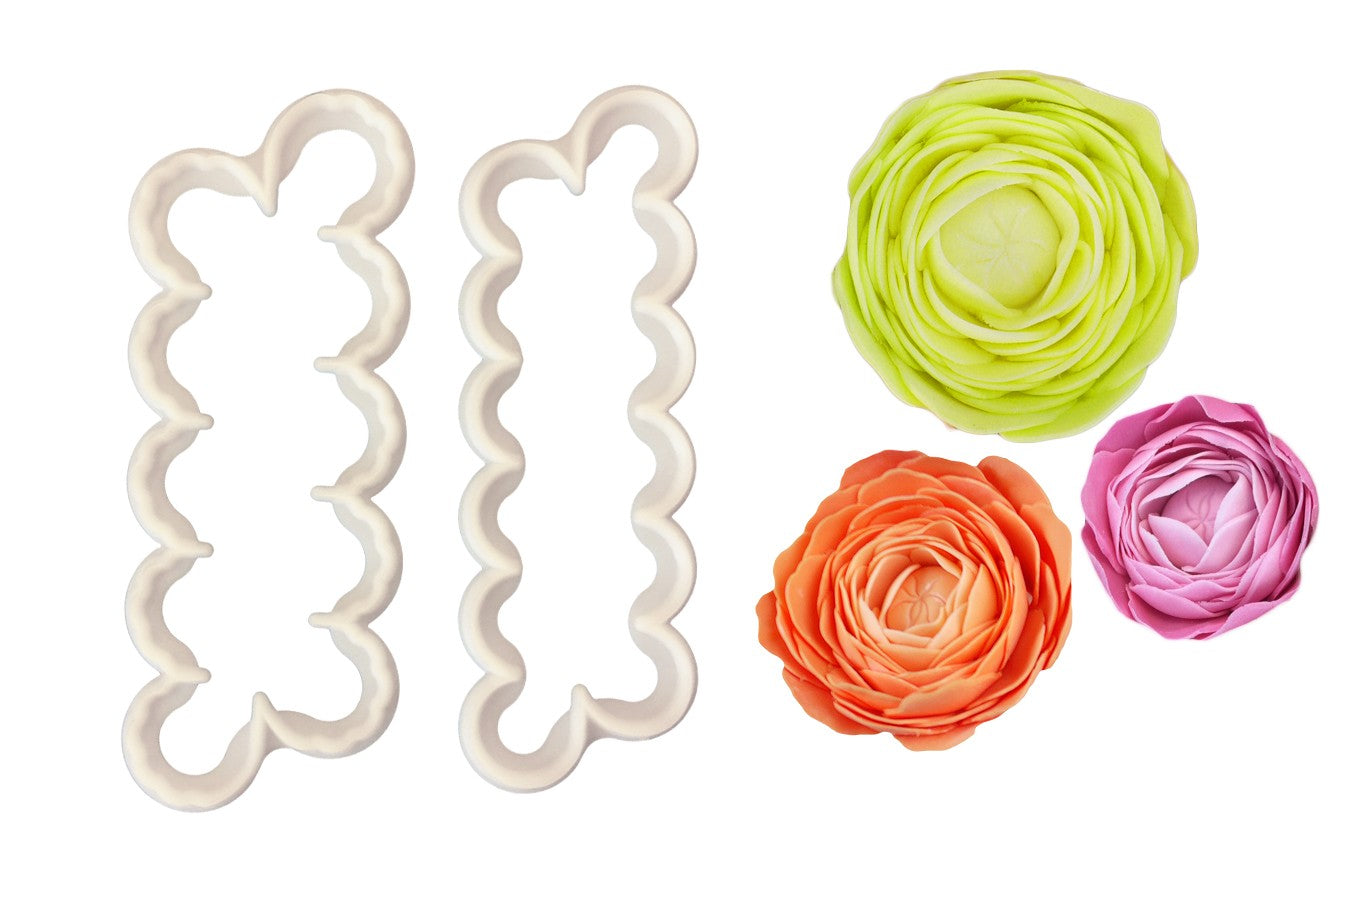 Easiest Ever Ranunculus Cutter - Set of 2